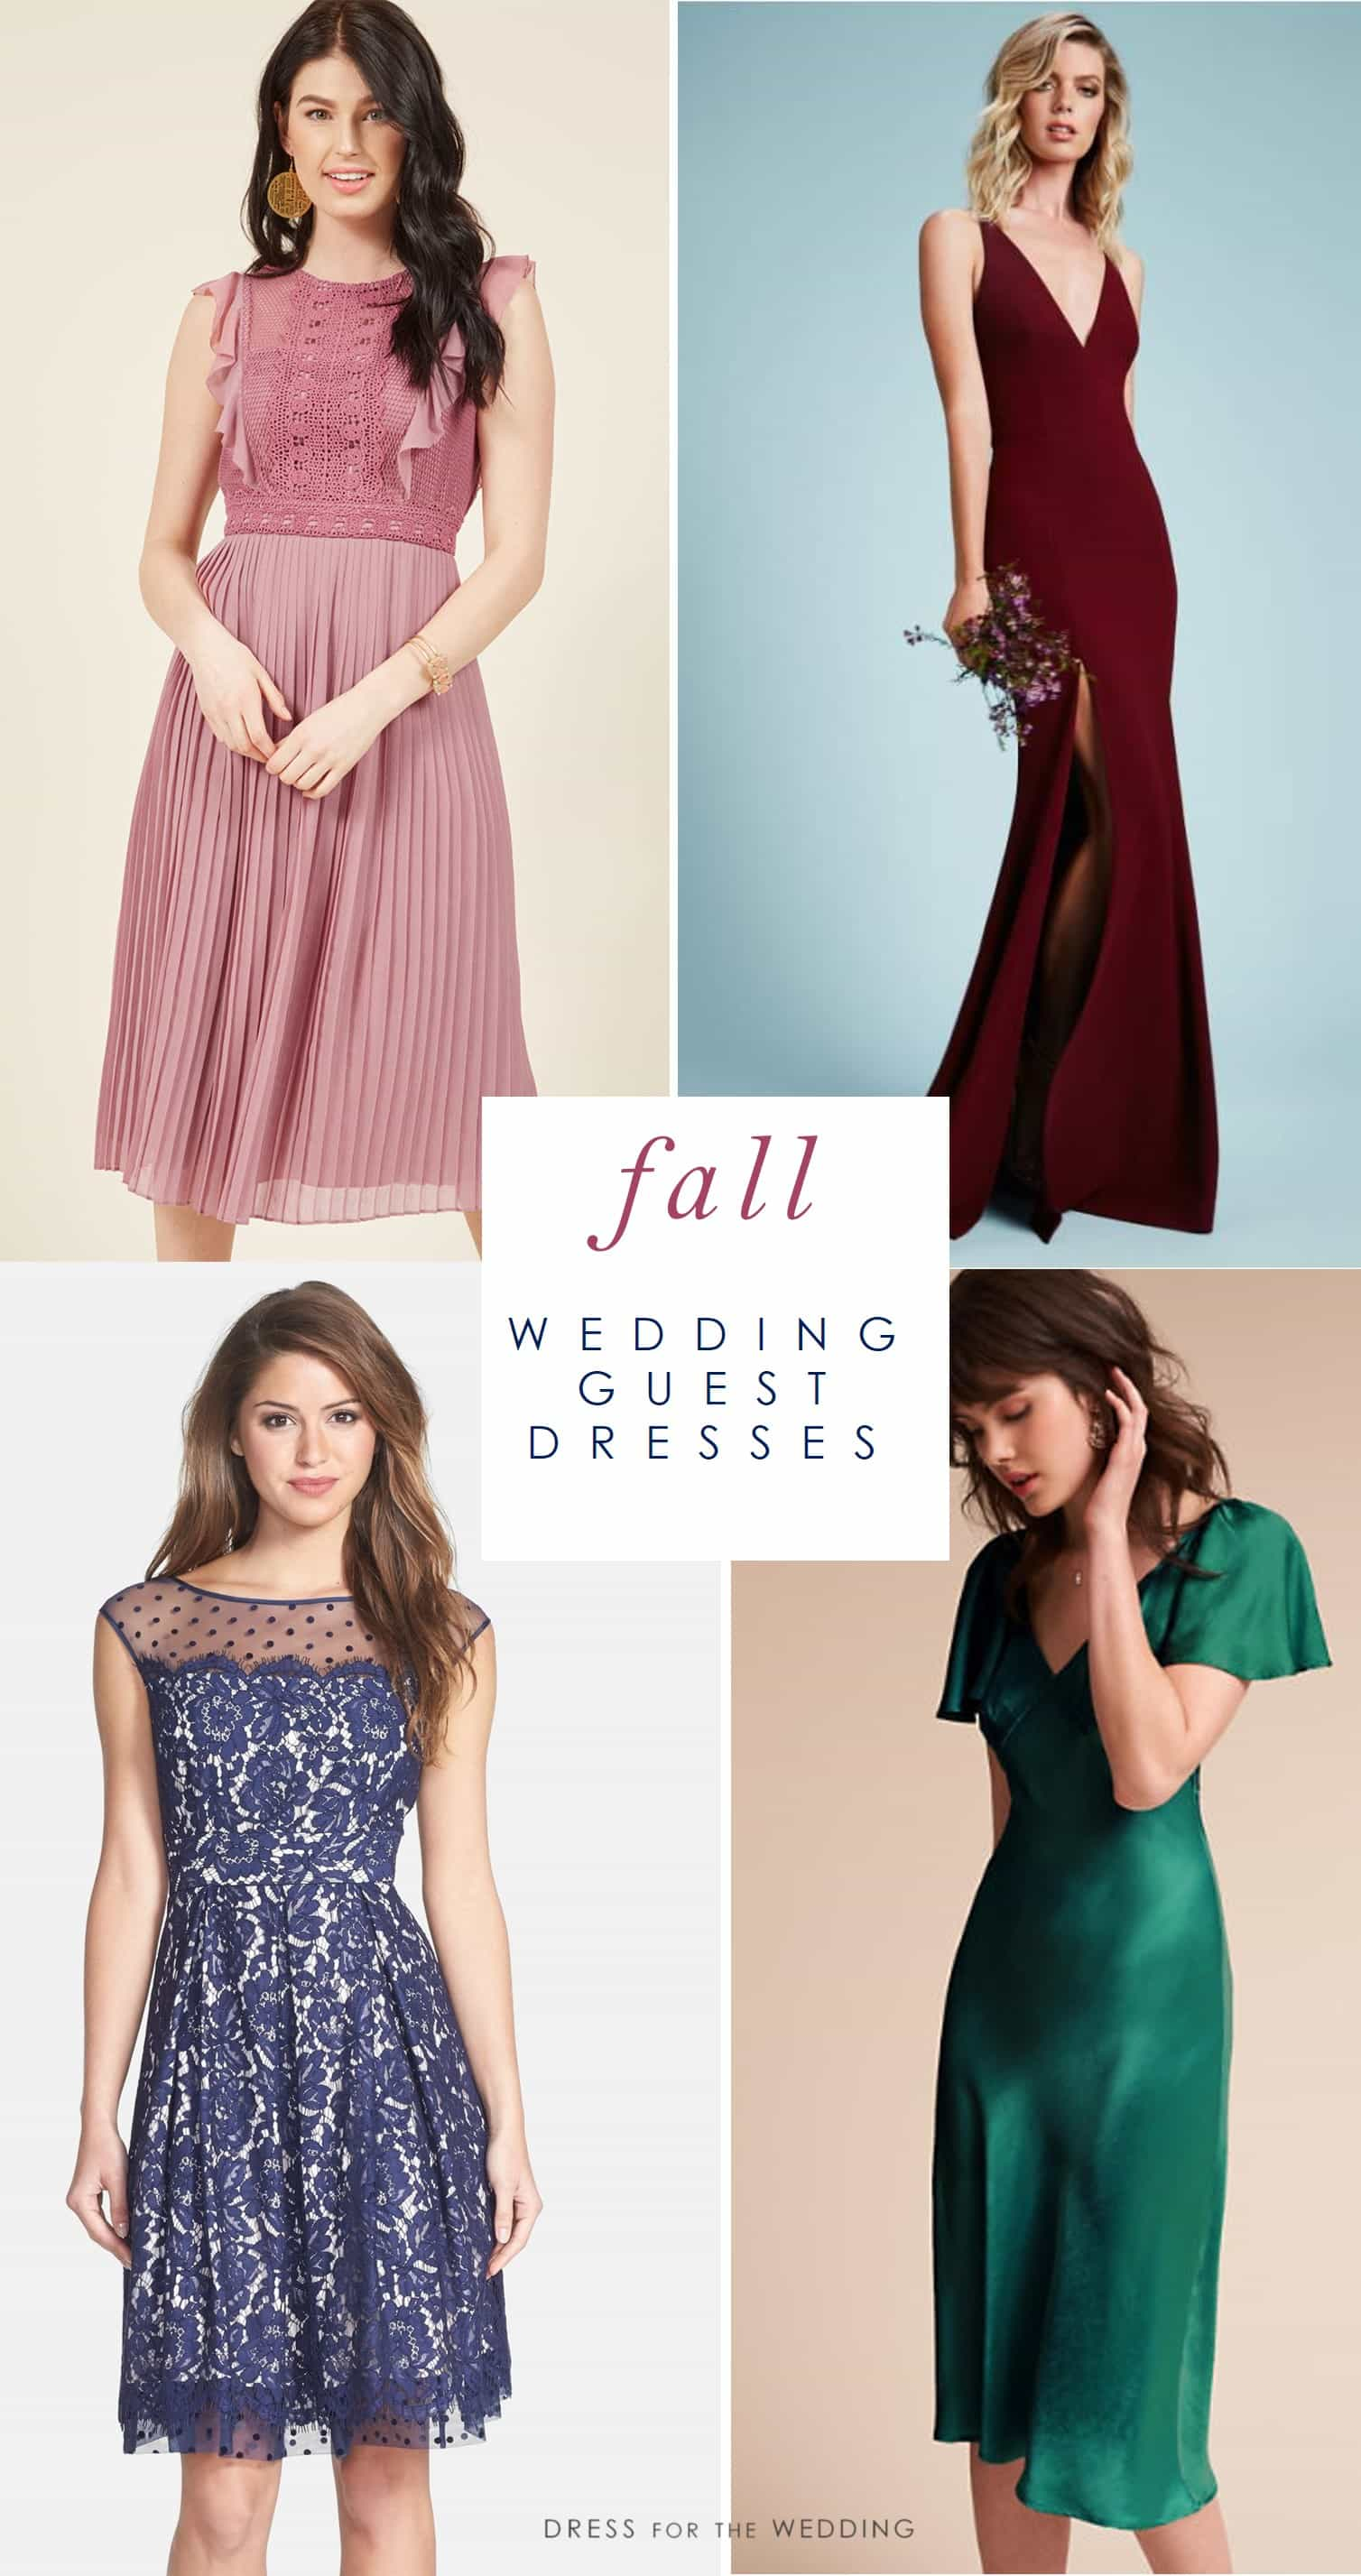 Fall wedding guest dresses what to wear to a fall wedding for Dress as a wedding guest